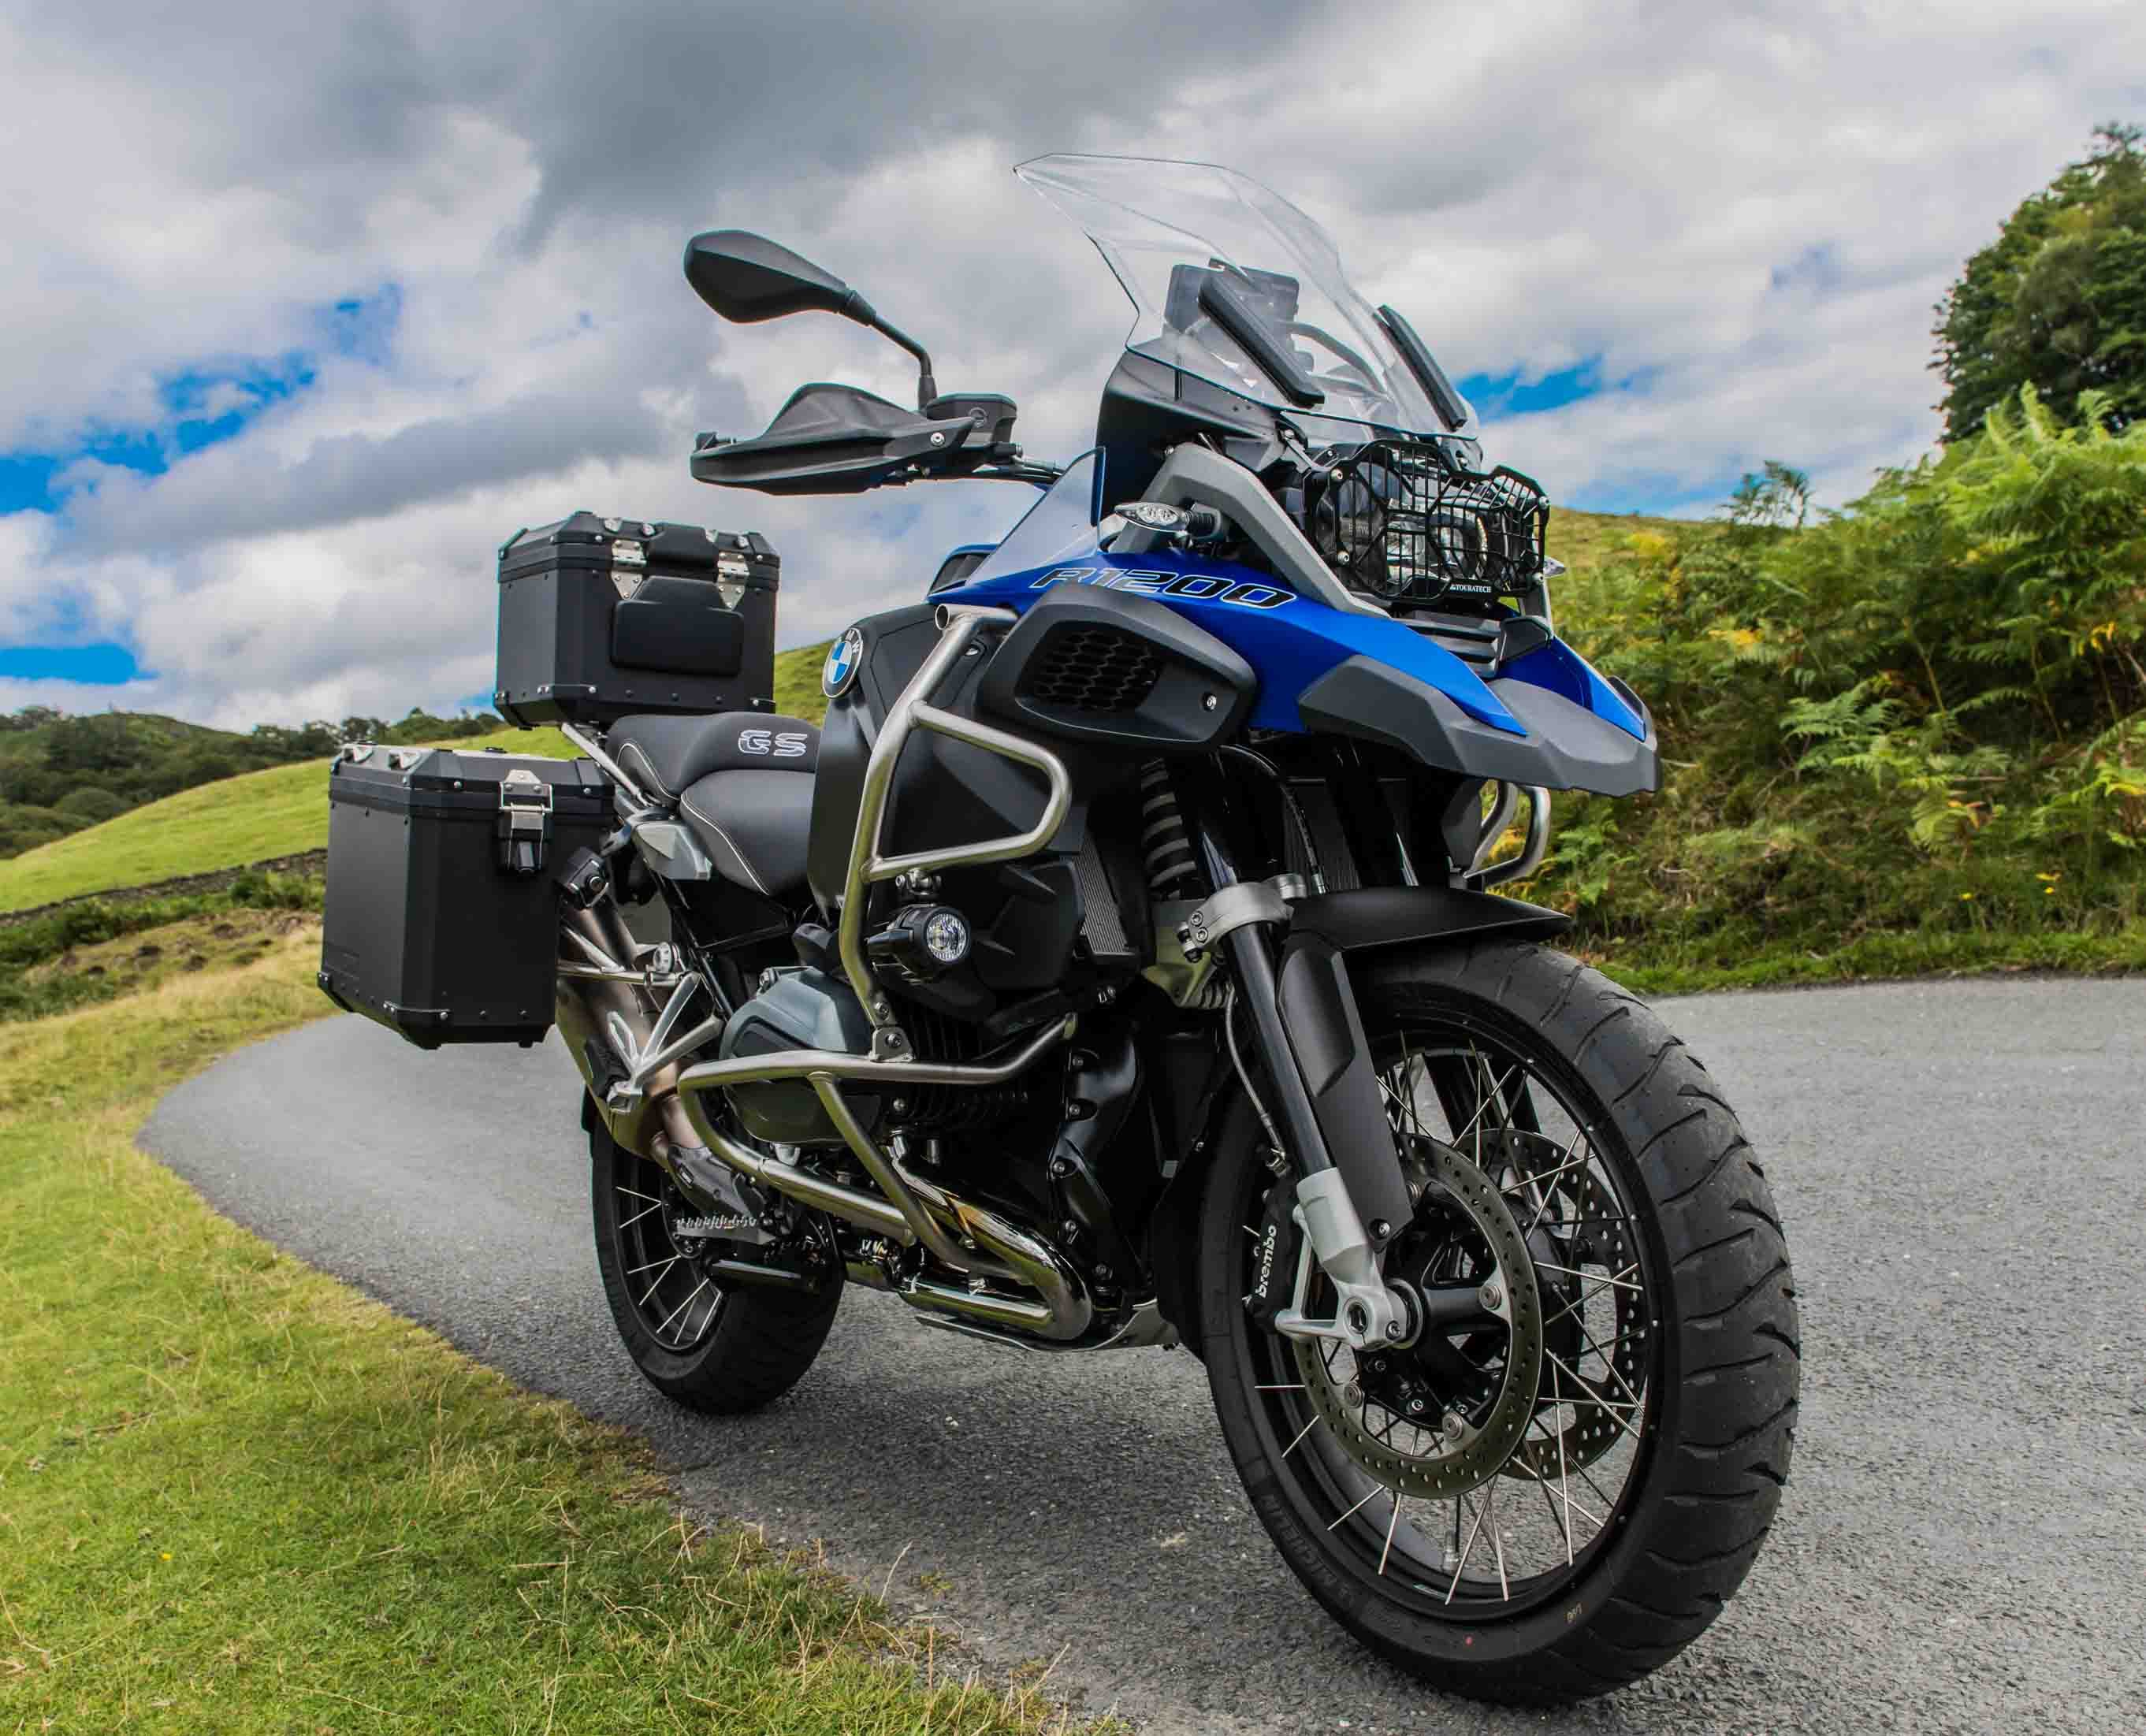 BMW R1200GS Adventure #1